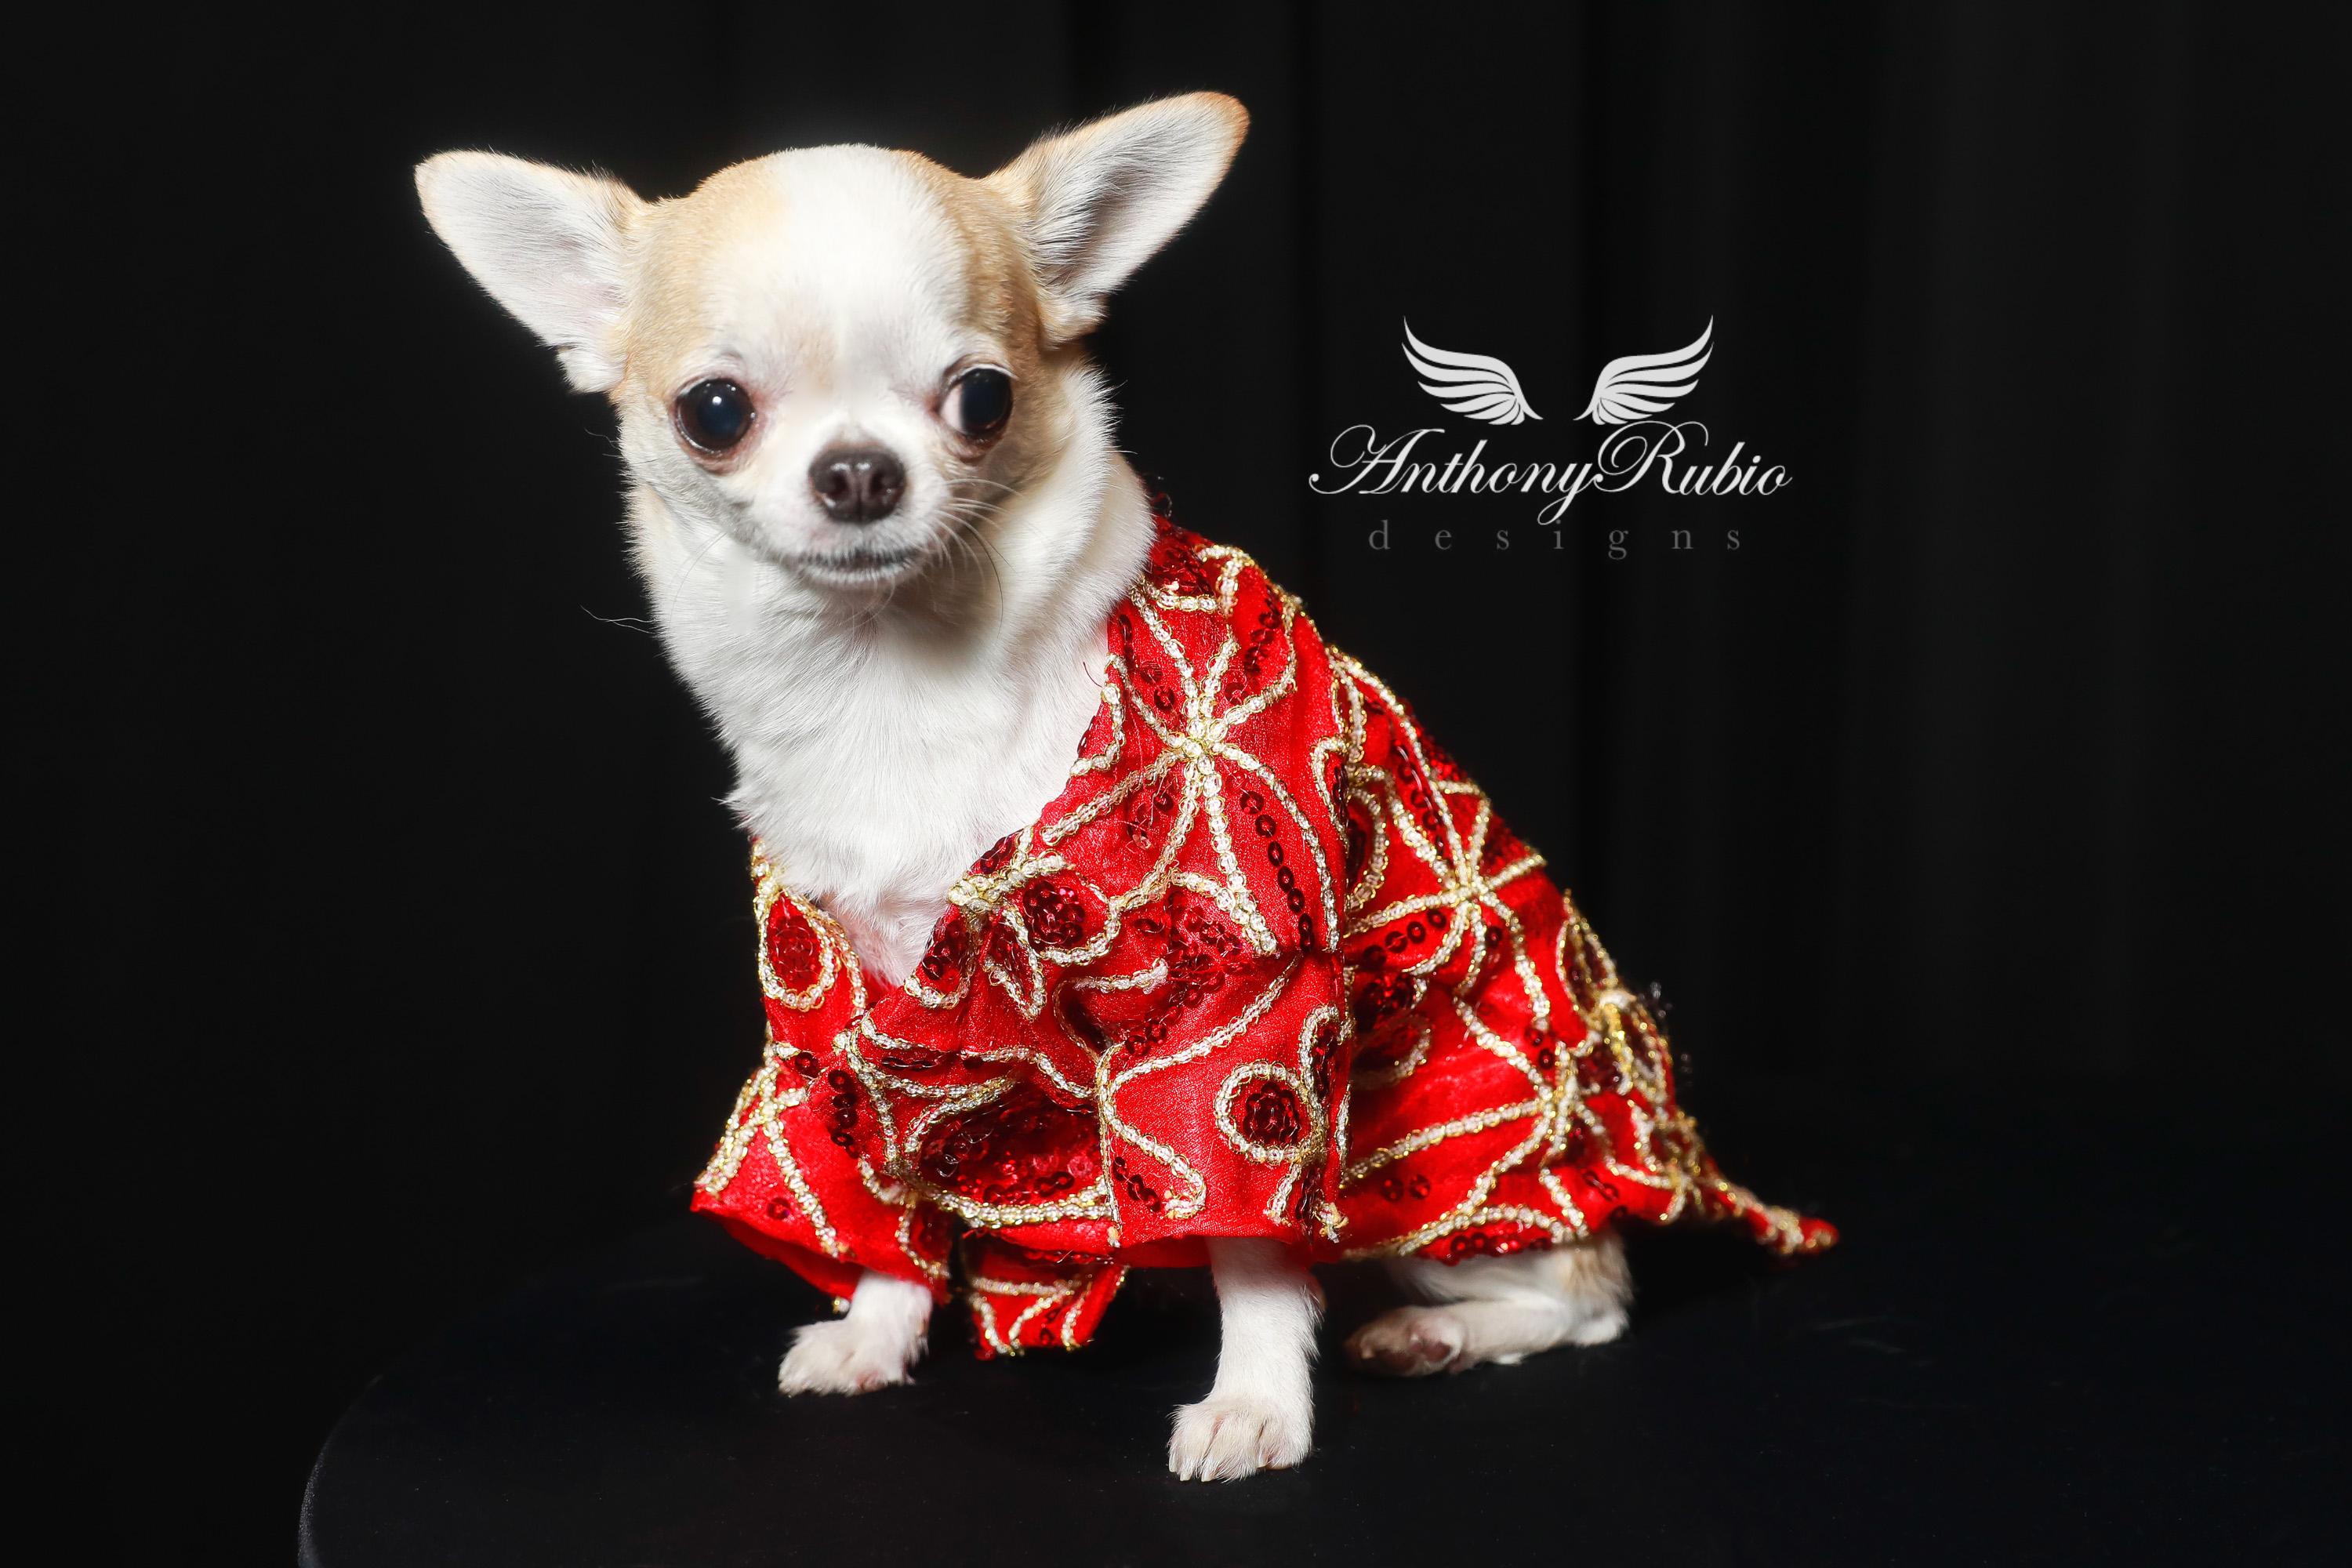 BEAUTIFUL FASHIONABLE PETS WOMEN CAN OWN IN THEIR HOME TO ENJOY 4